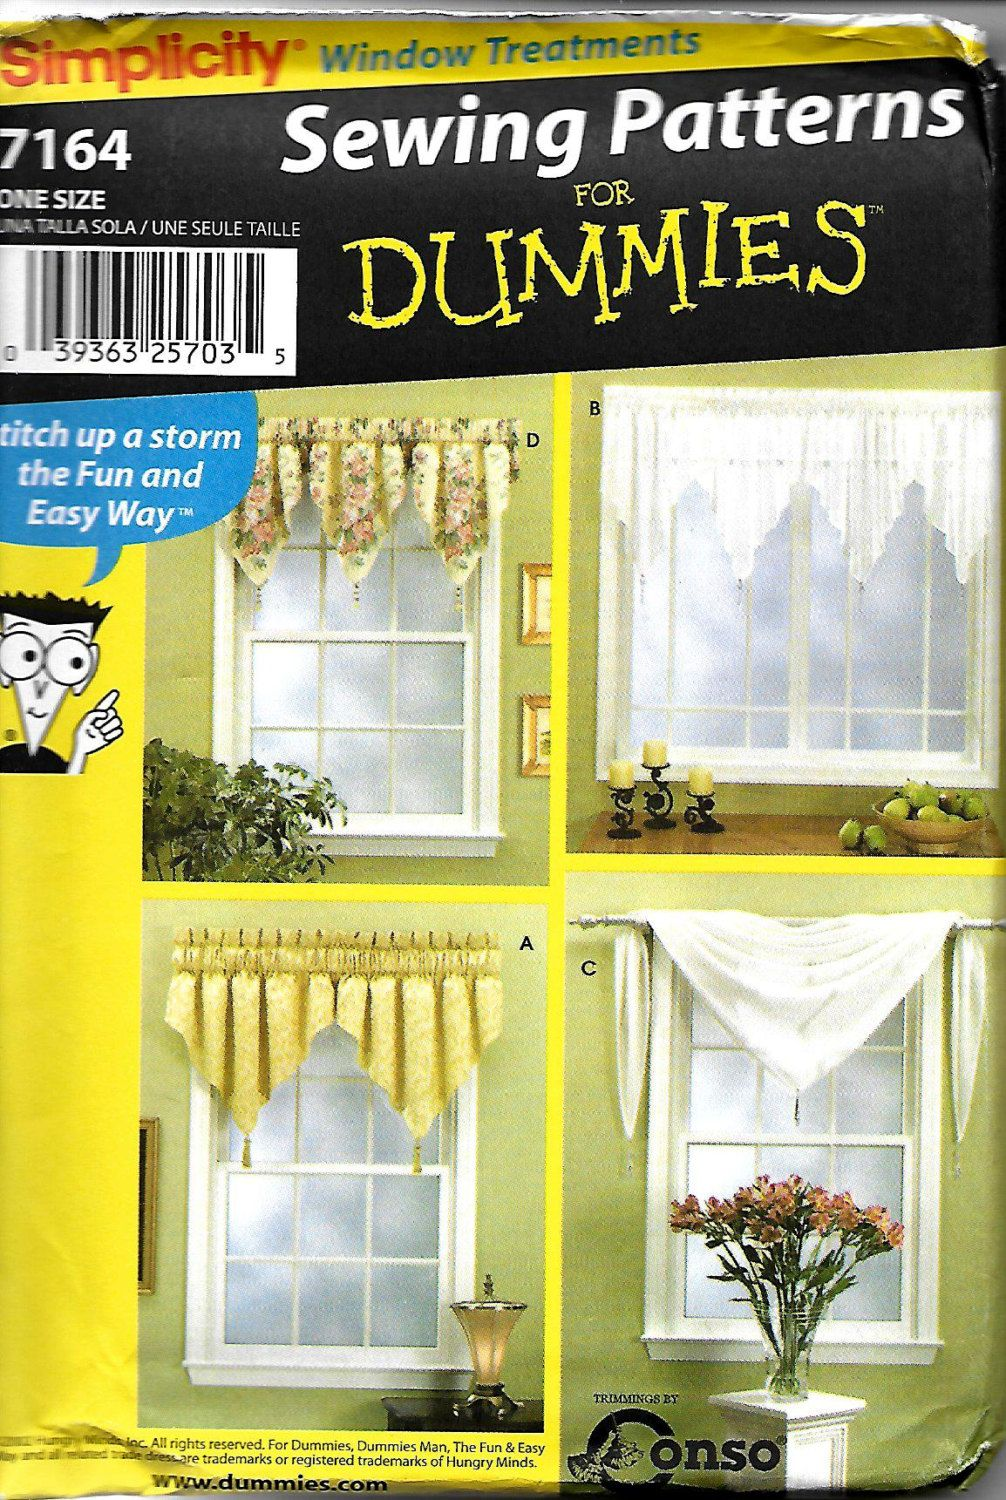 Simplicity 7164 Sewing Patterns For Dummies Window Treatments